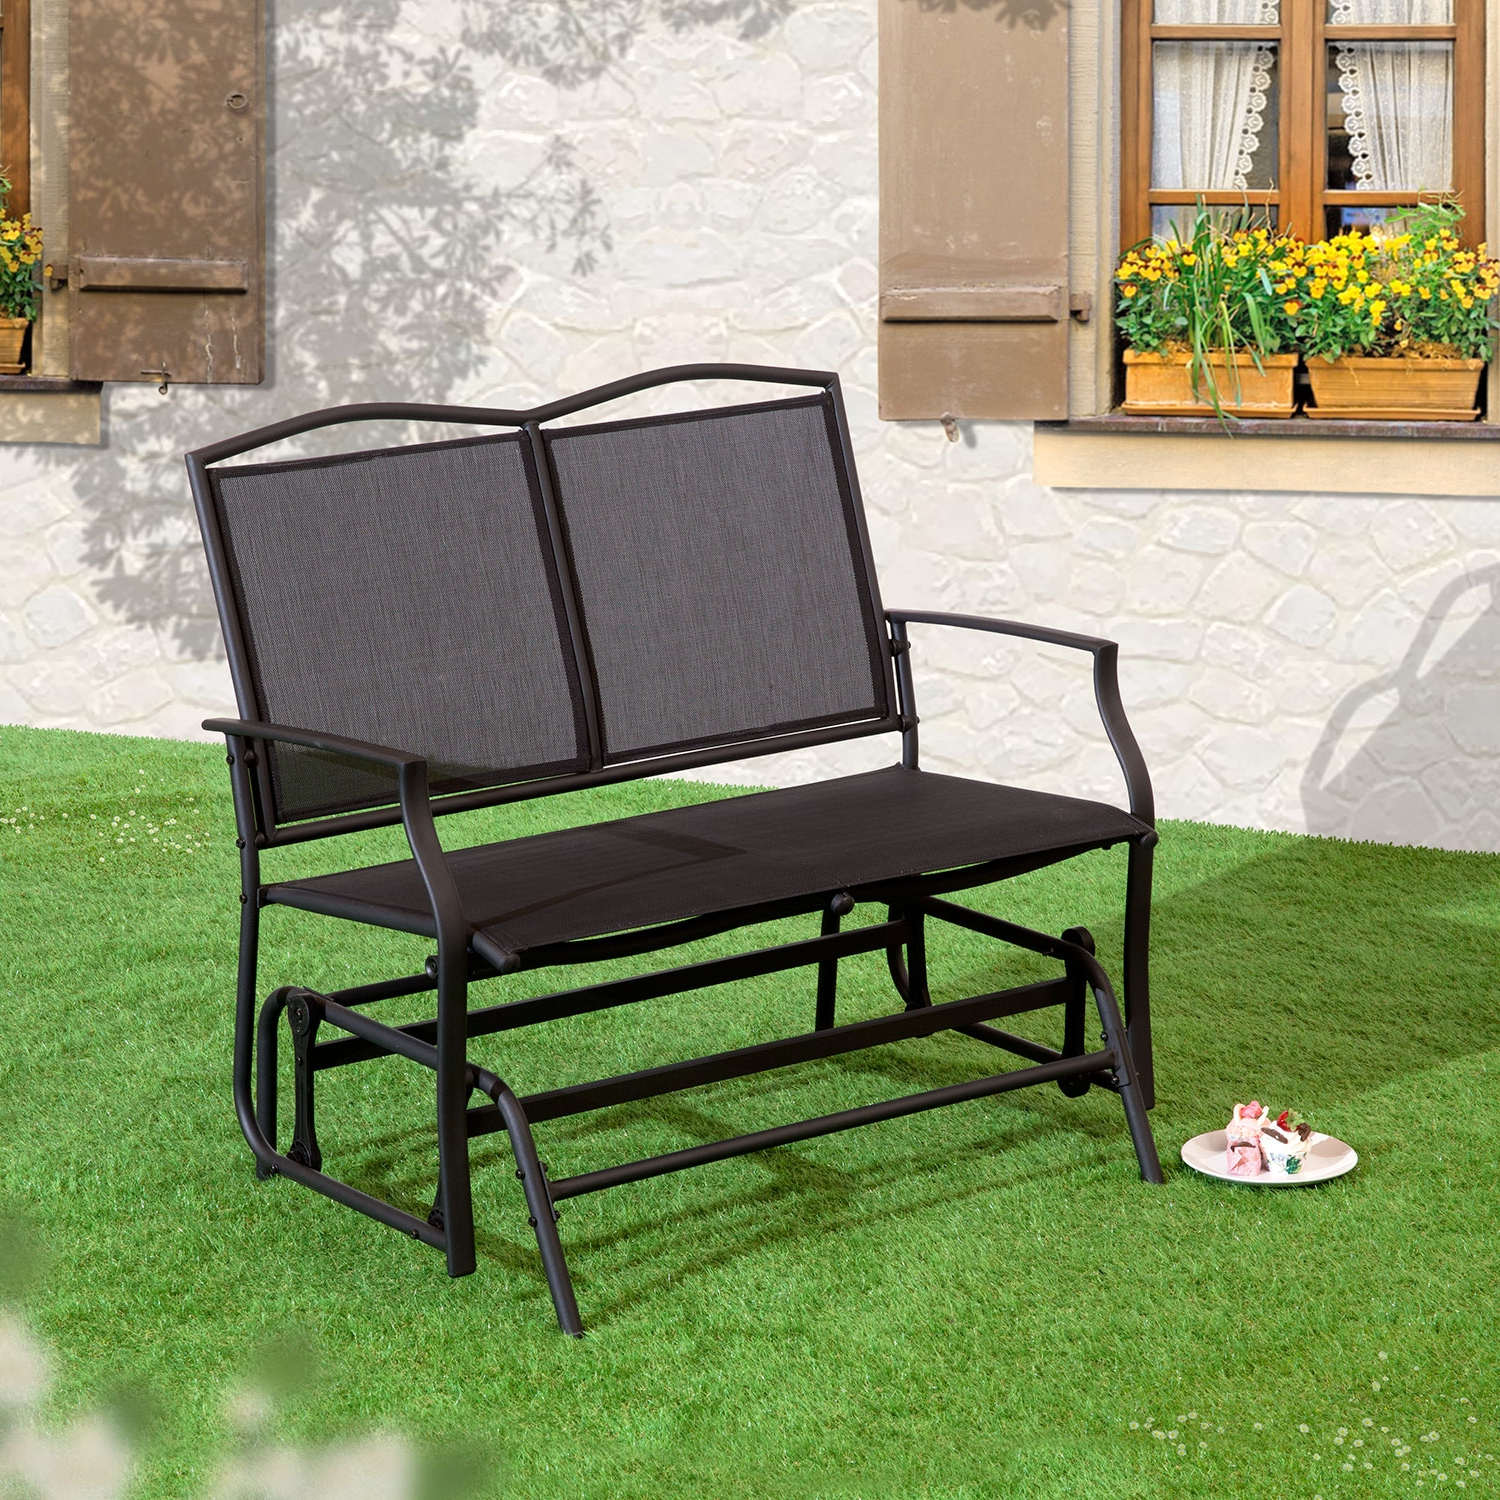 Famous Twin Seat Glider Benches Intended For Details About Black 2 Seat Glider Bench (View 7 of 31)